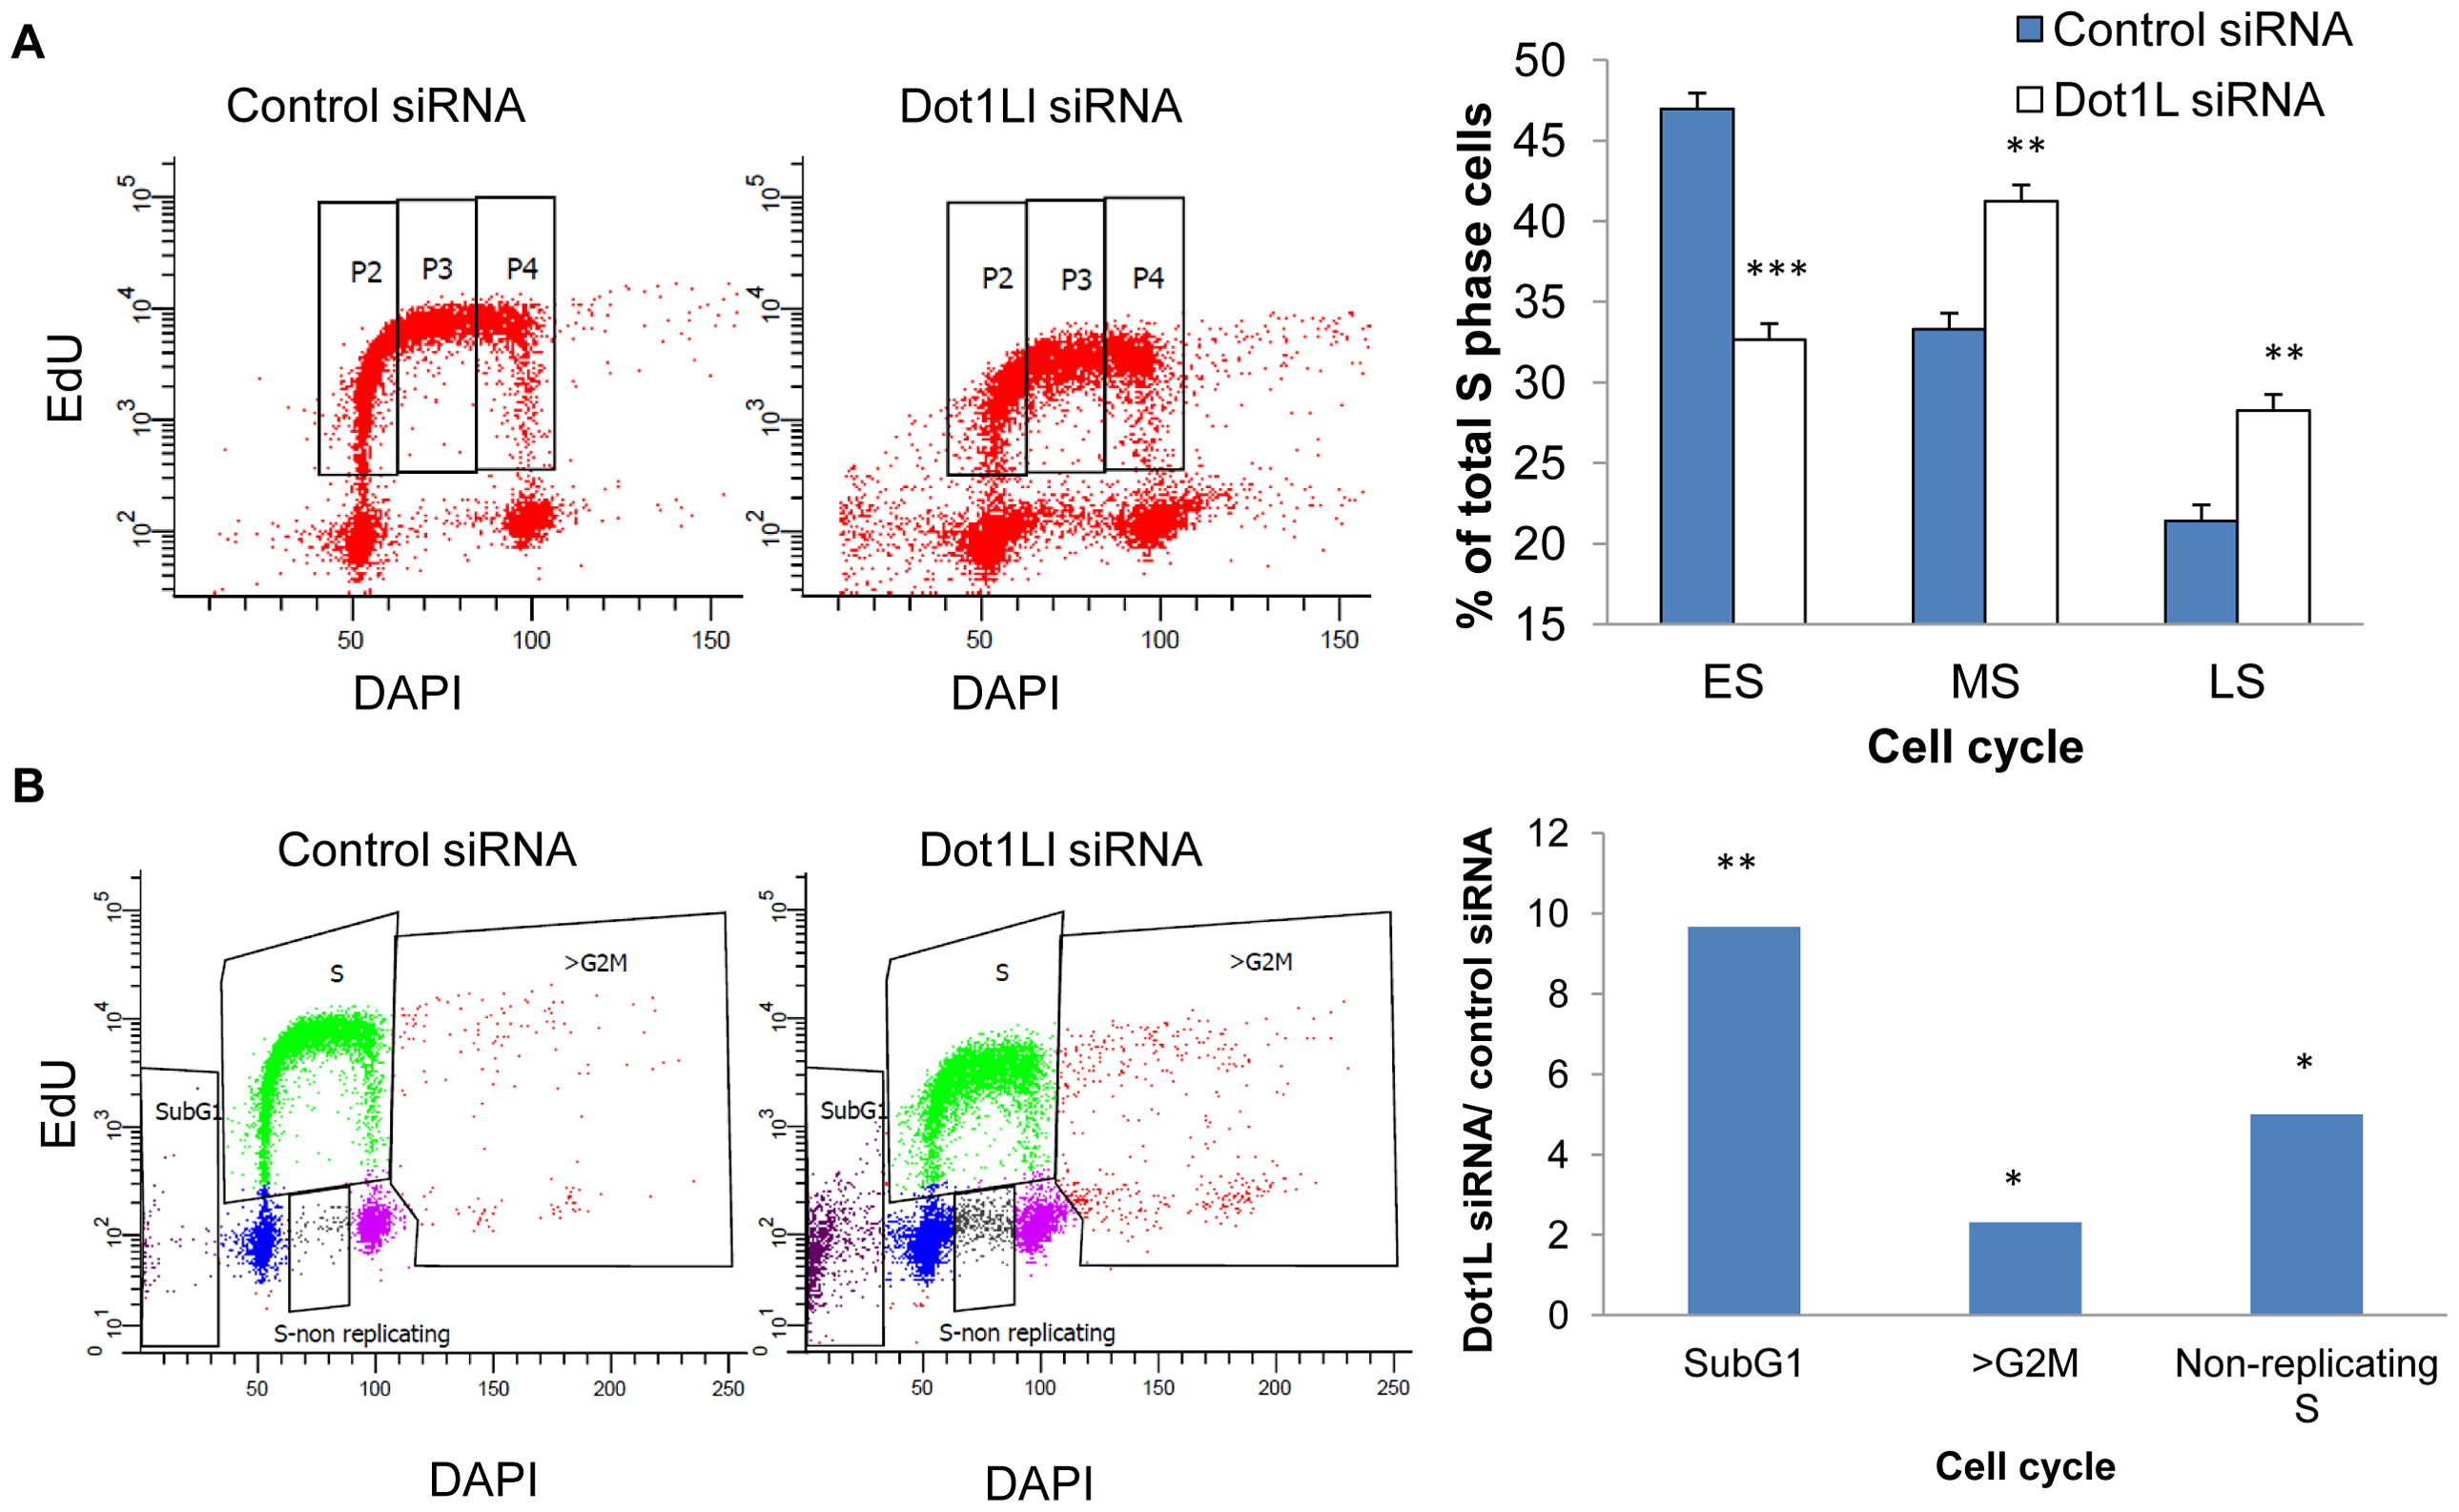 Effects of Dot1L depletion on cell cycle progression.